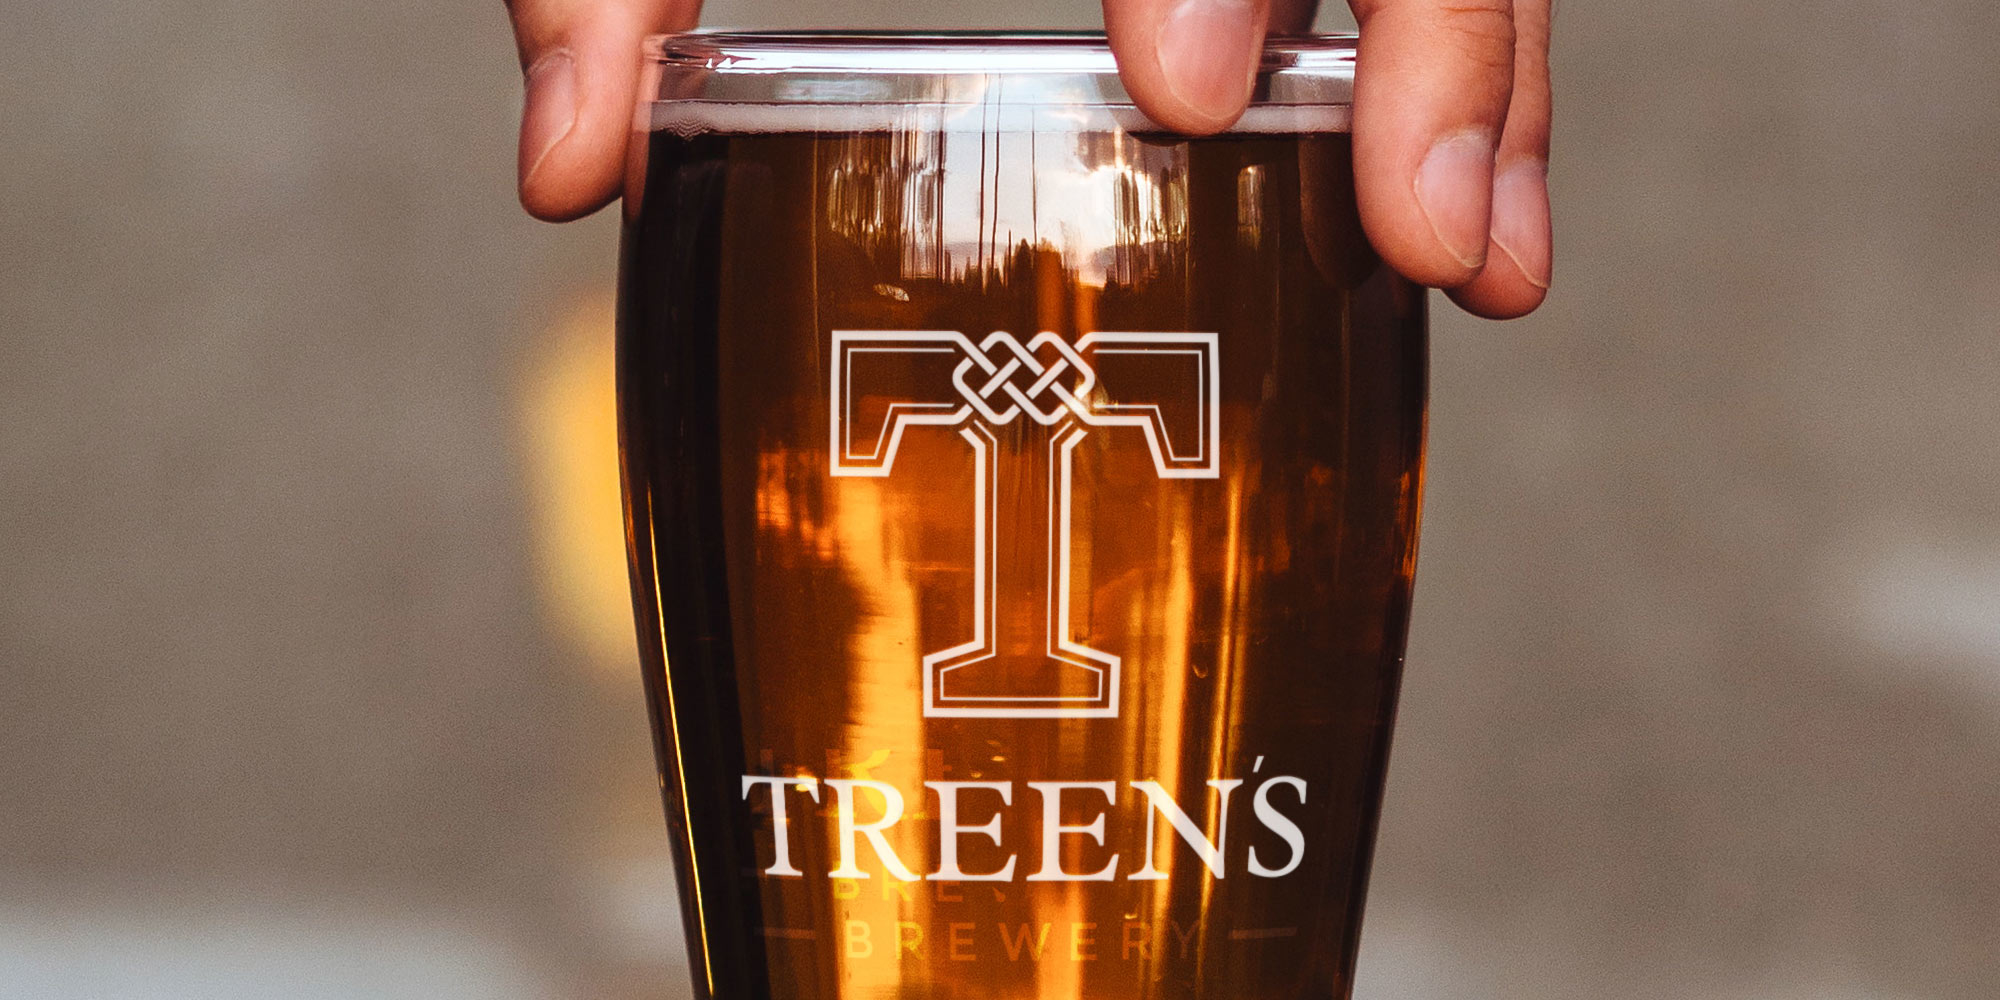 Treen's Brewery Print Design on Pint Glass